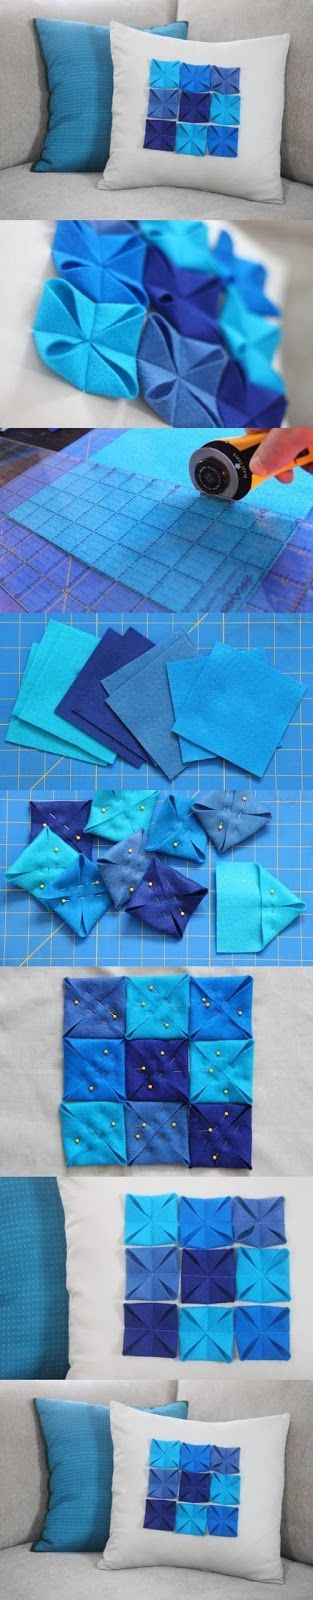 Pillow with Felt Pads DIY Projects